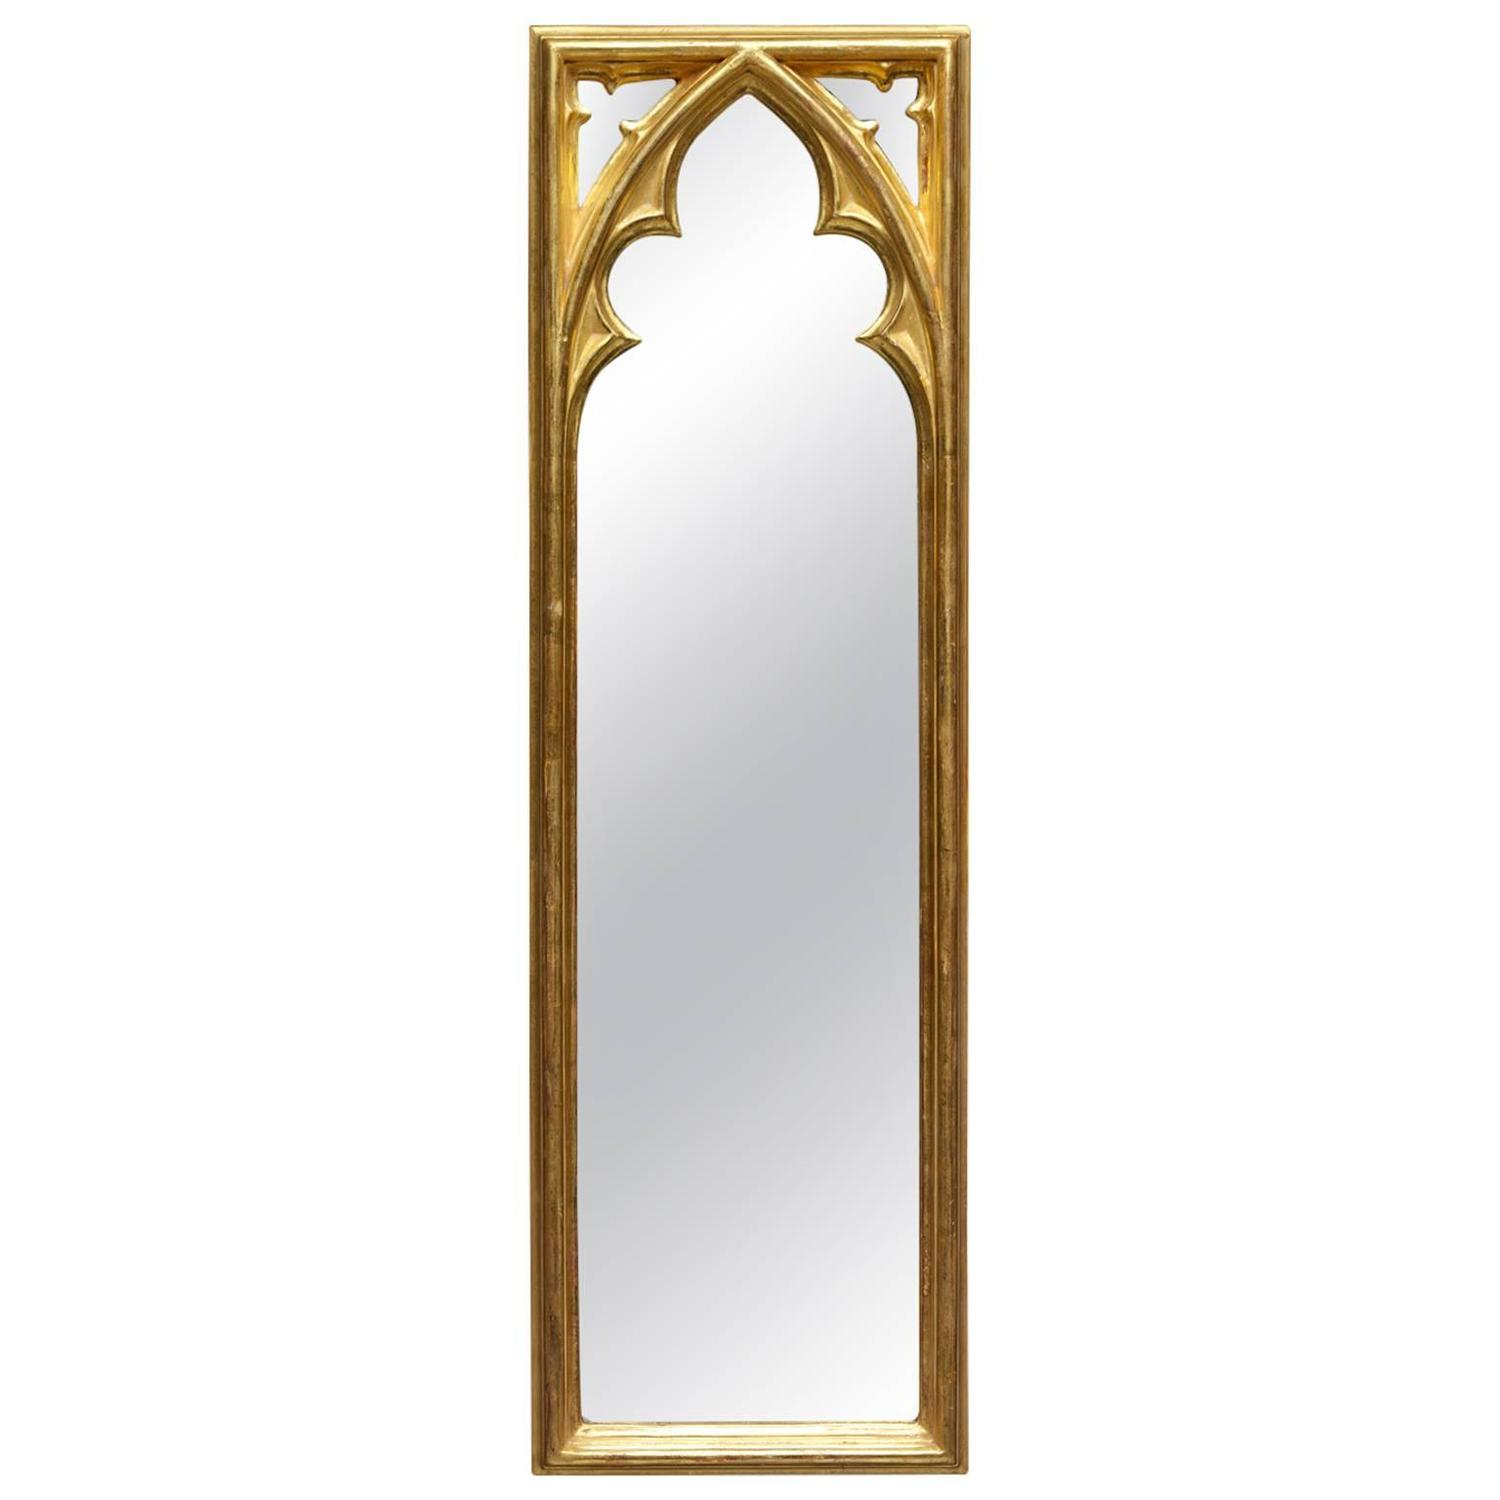 Gothic revival burl wood arched wall mirror at 1stdibs strawberry hill gothic pier mirror amipublicfo Gallery